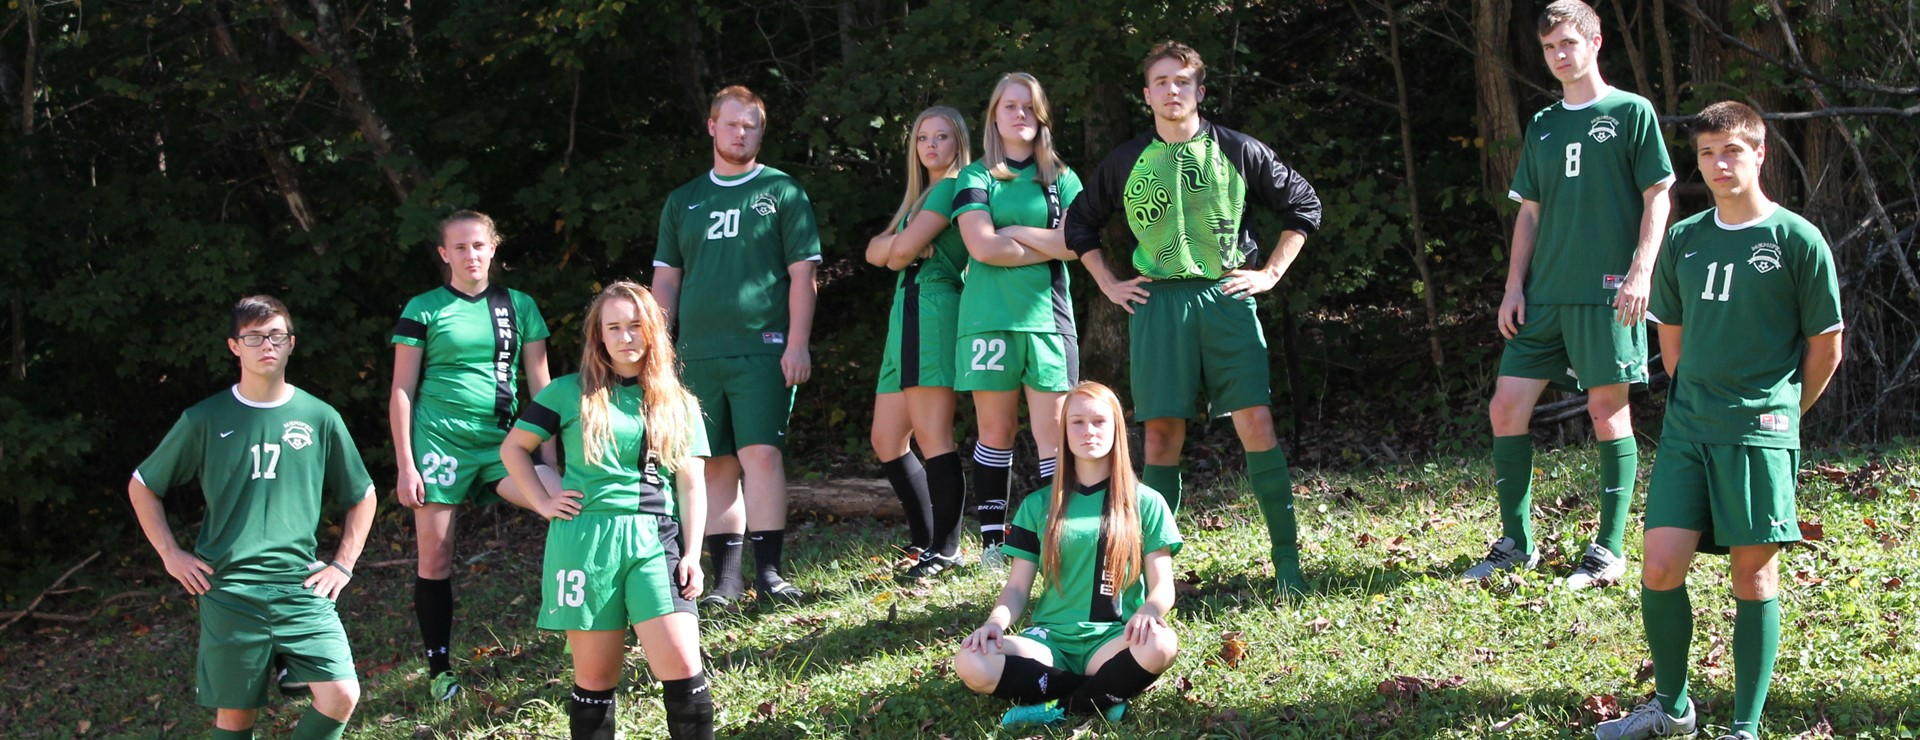 MCHS Senior Soccer Players